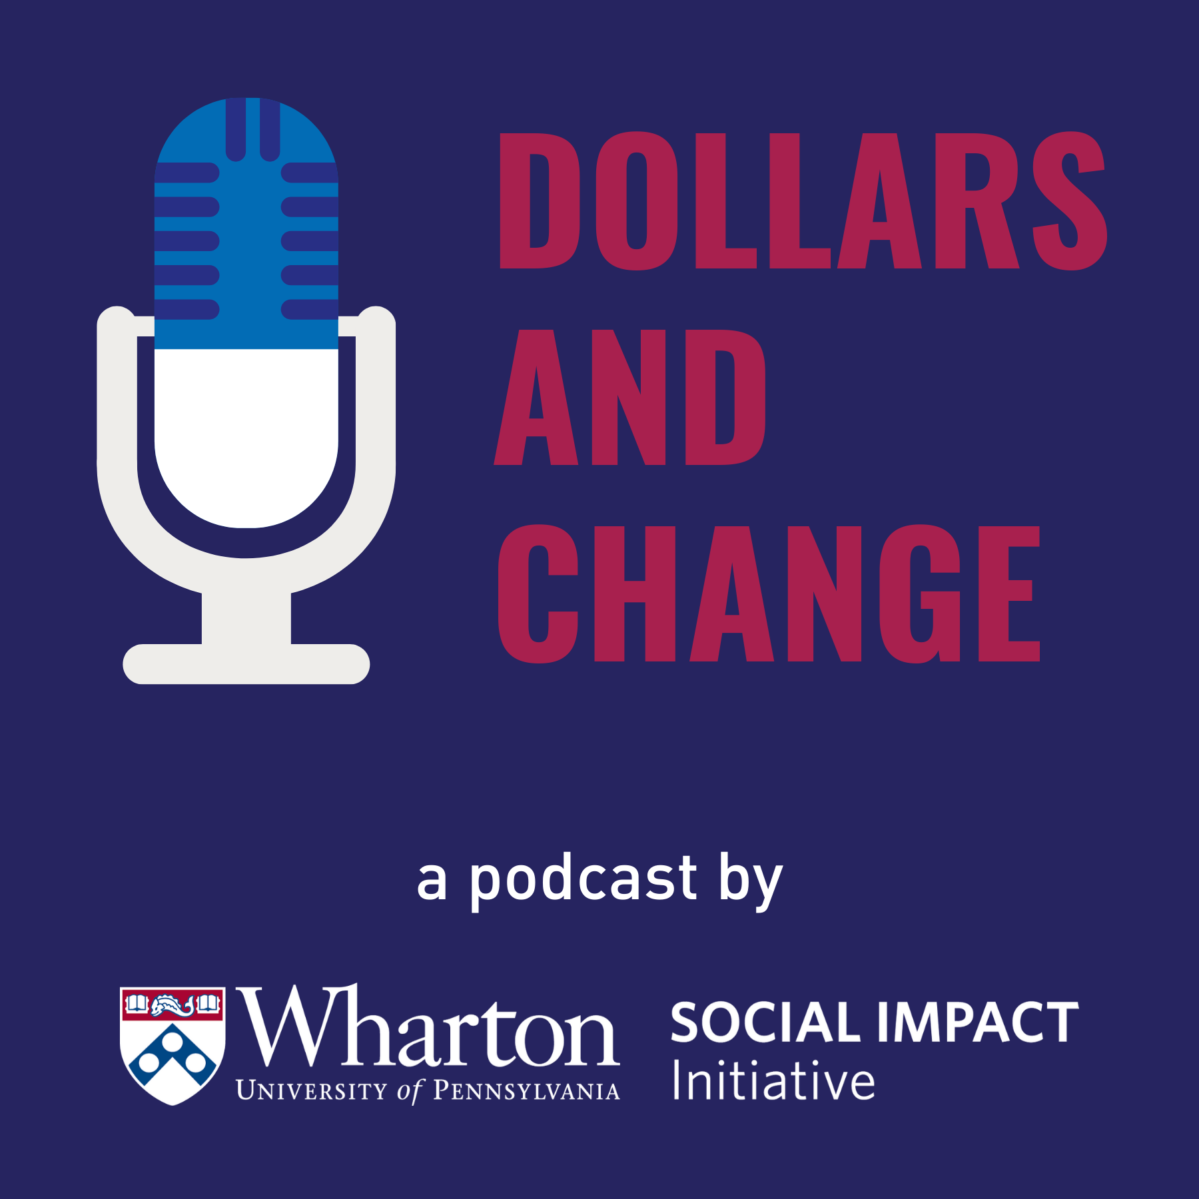 dollars and change album art with microphone icon and wsii logo